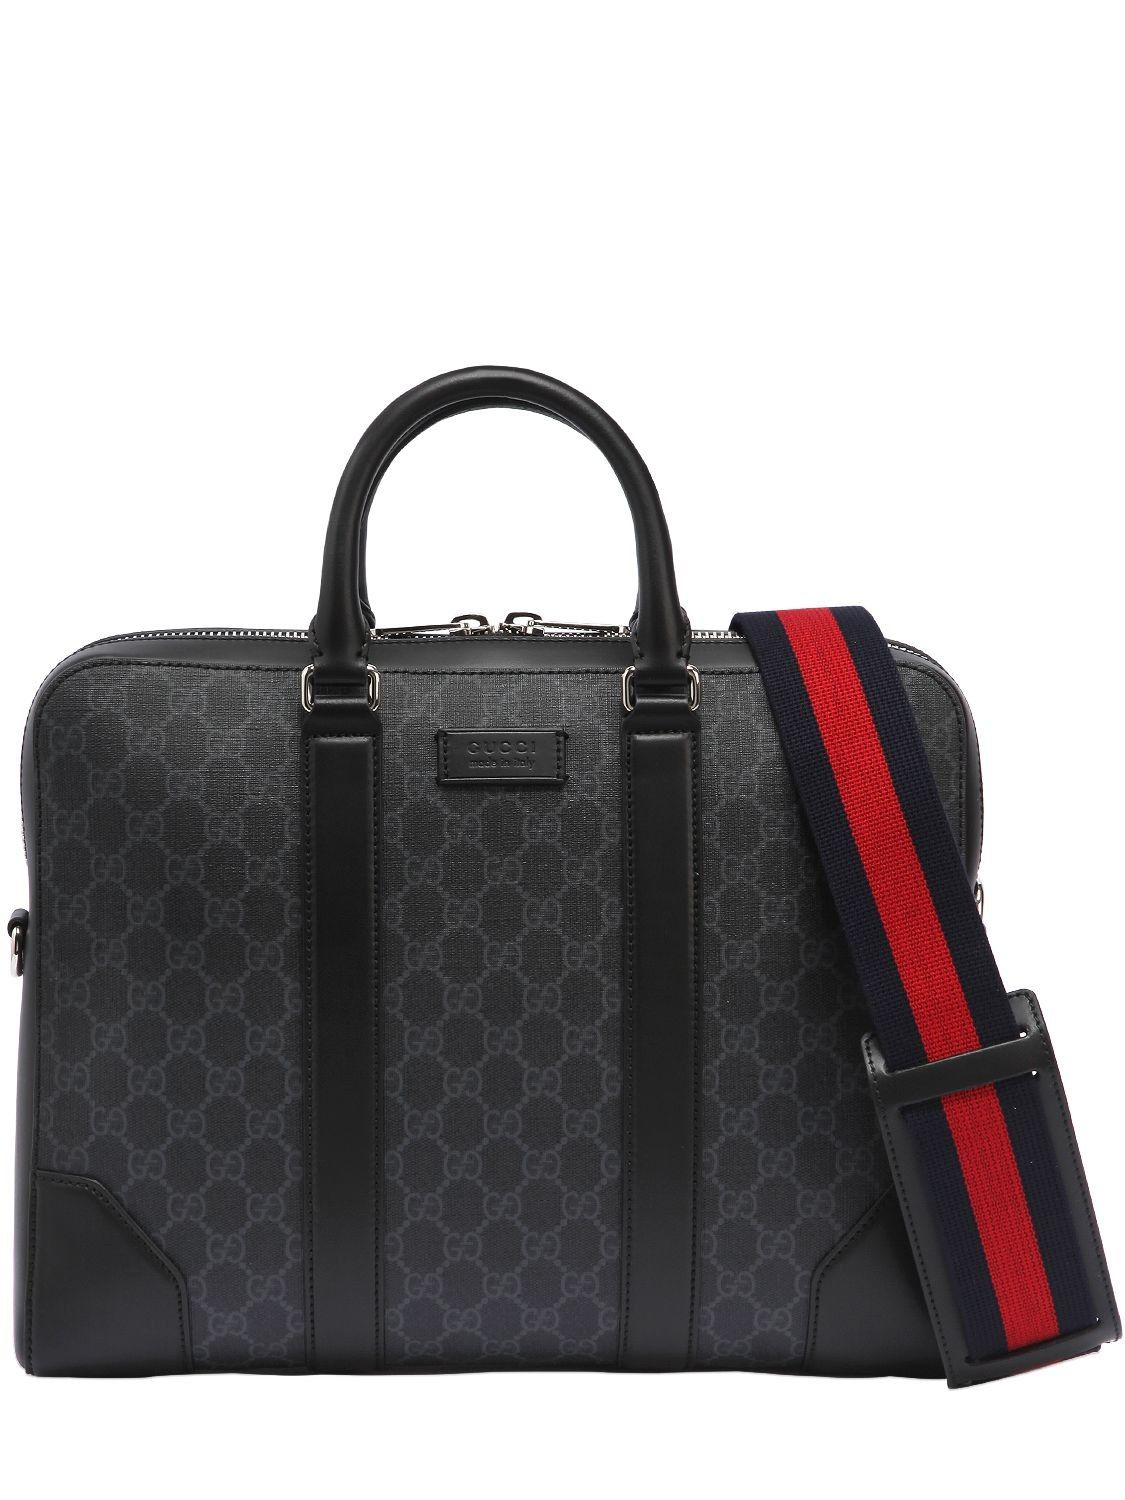 9b4aadcf42e929 GUCCI SLIM GG SUPREME LOGO BRIEFCASE. #gucci #bags #shoulder bags #hand bags  #canvas #leather #lining